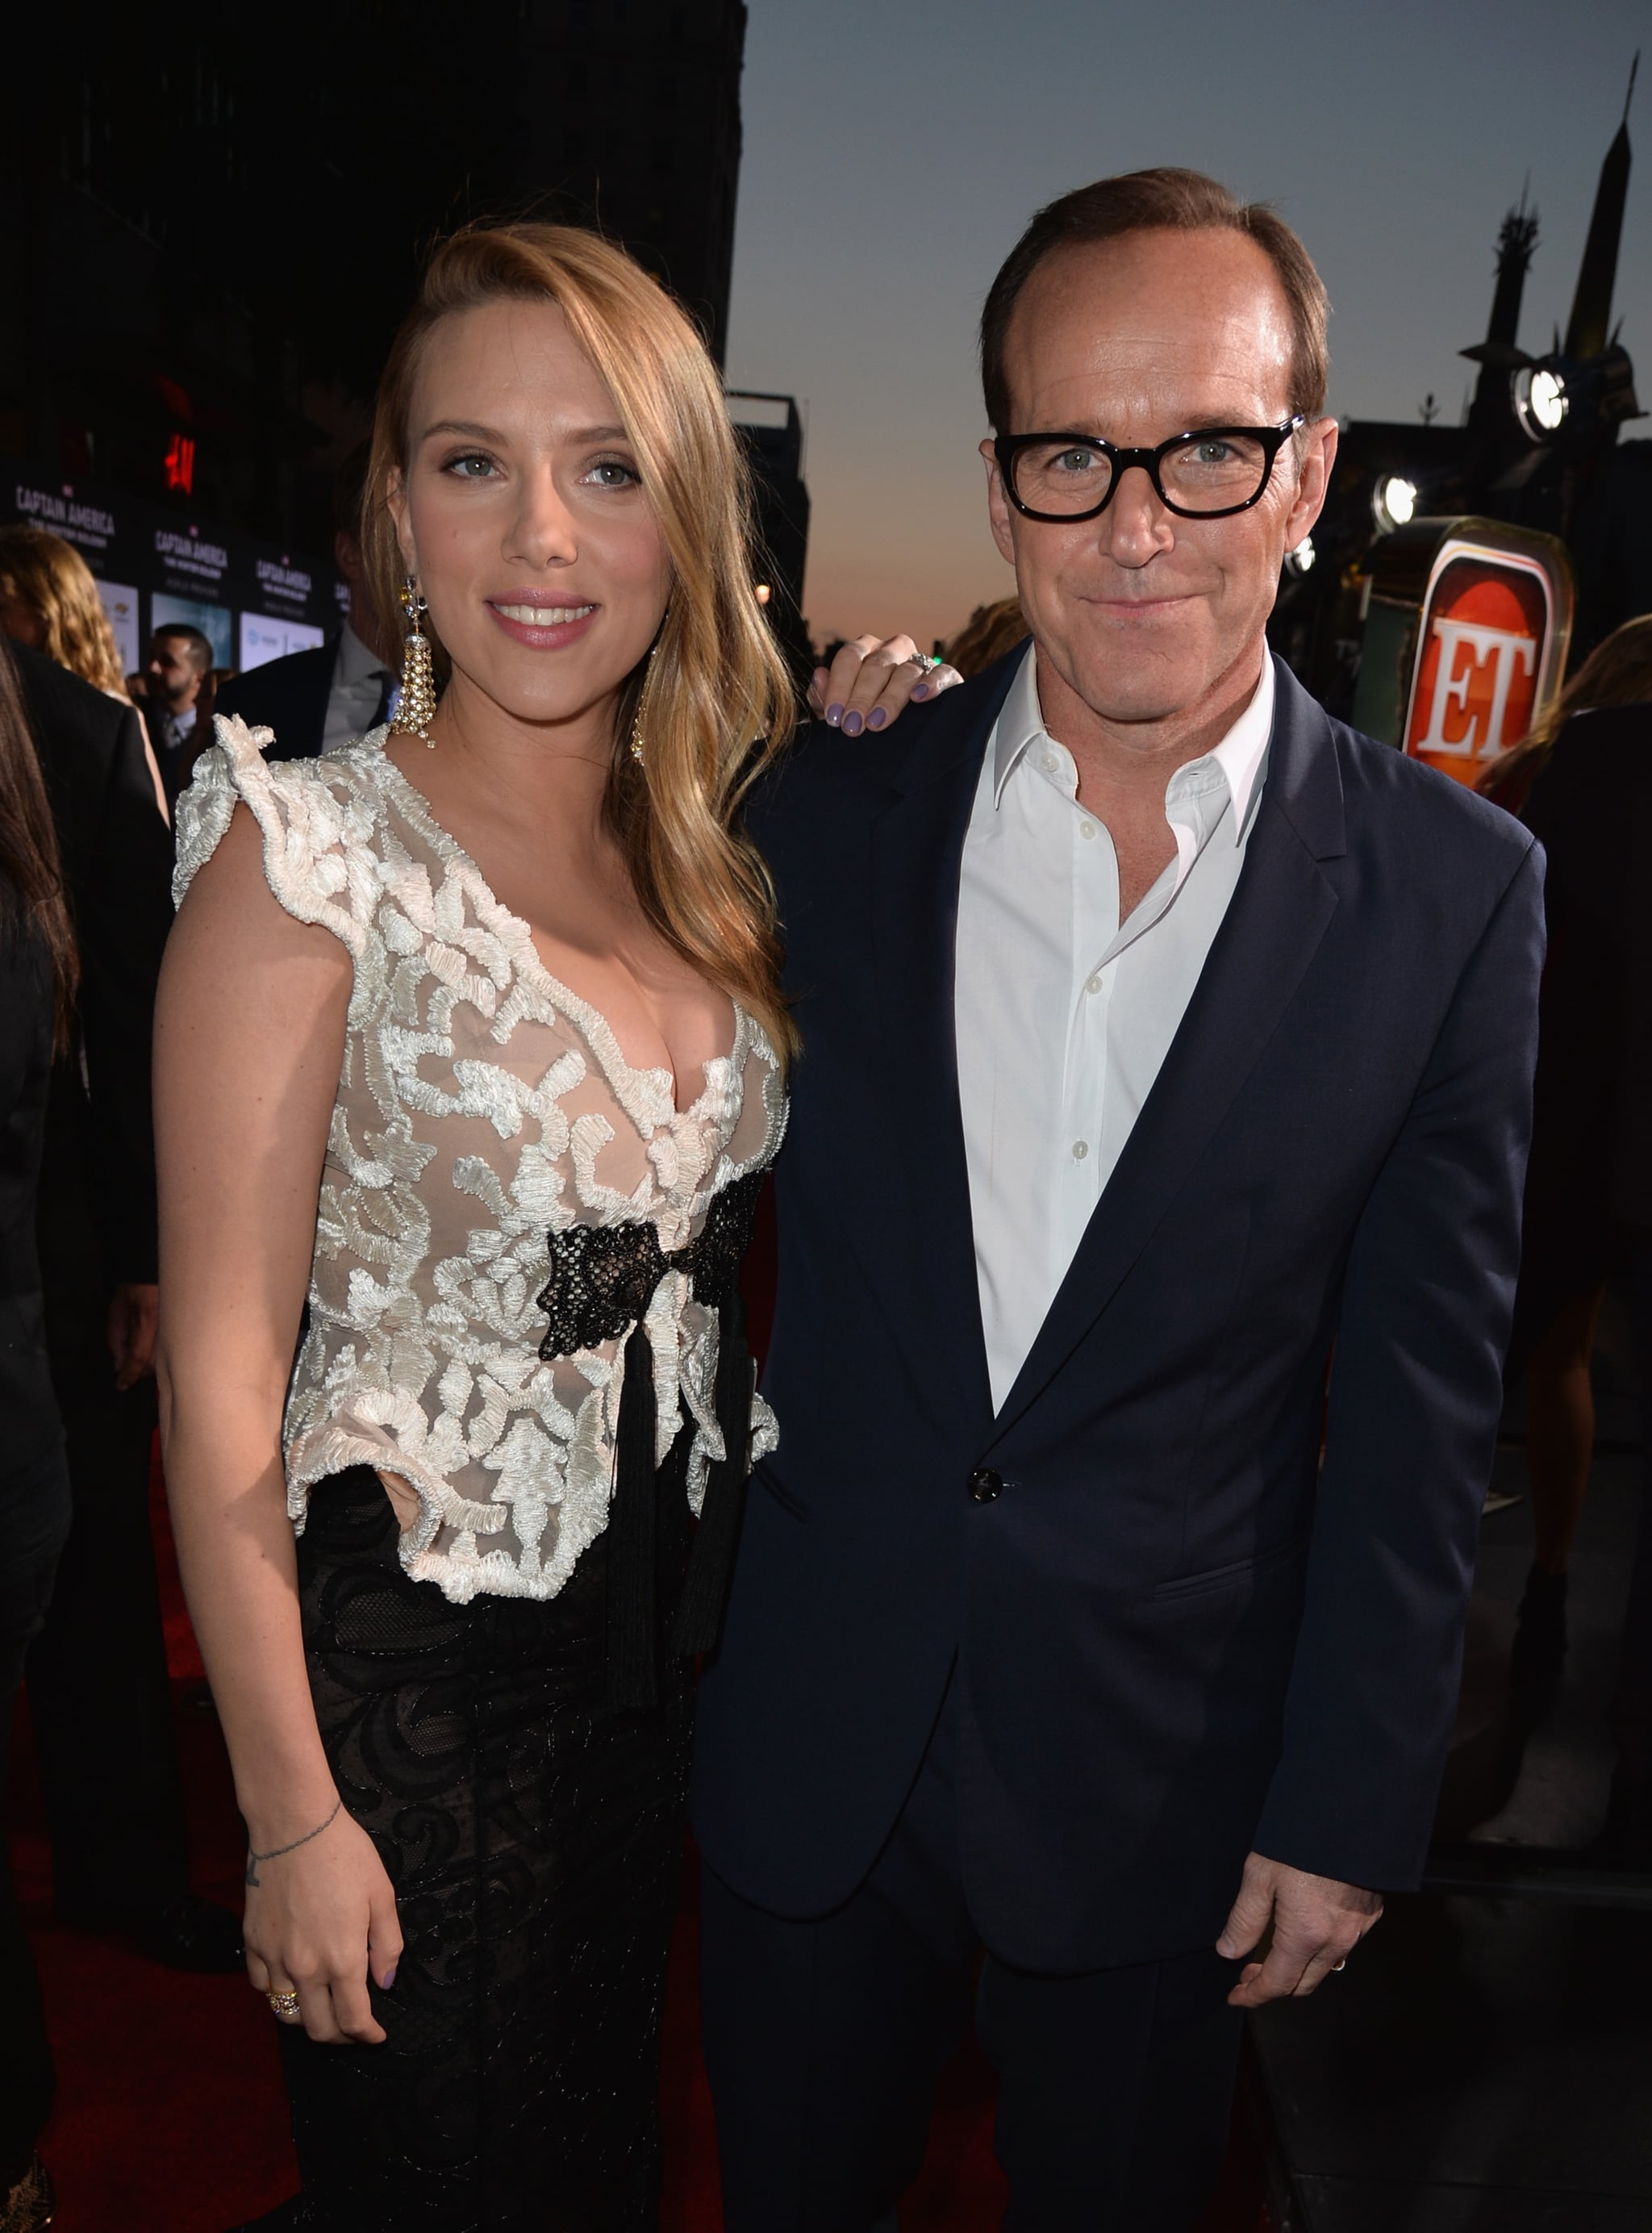 Scarlett greeted Clark Gregg, star of  Marvel's Agents of S.H.I.E.L.D. on ABC.